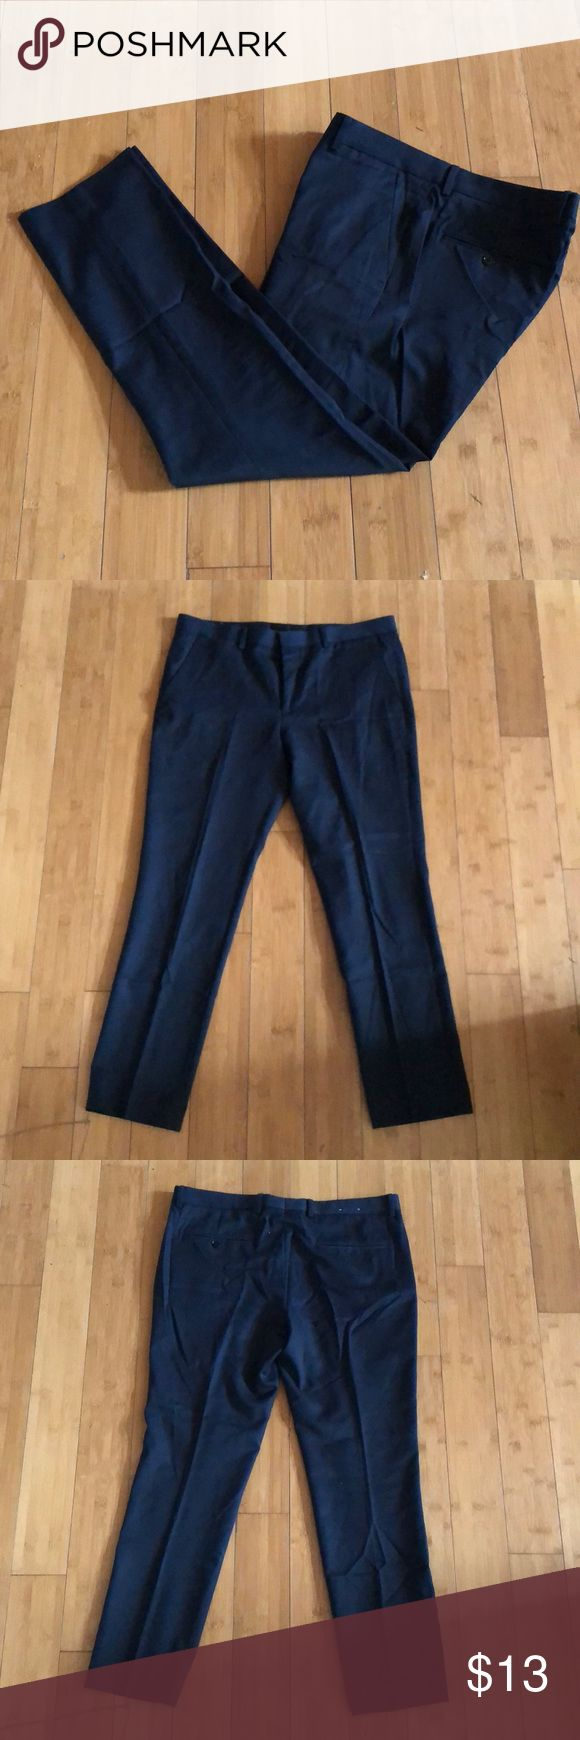 Express Navy Blue Dress Pants Innovator Cut 32/30 This item has been lightly used and is in excellent condition. The size is 32/30 in the Innovator Cut from Express. The pants are pleated. Express Pants Dress